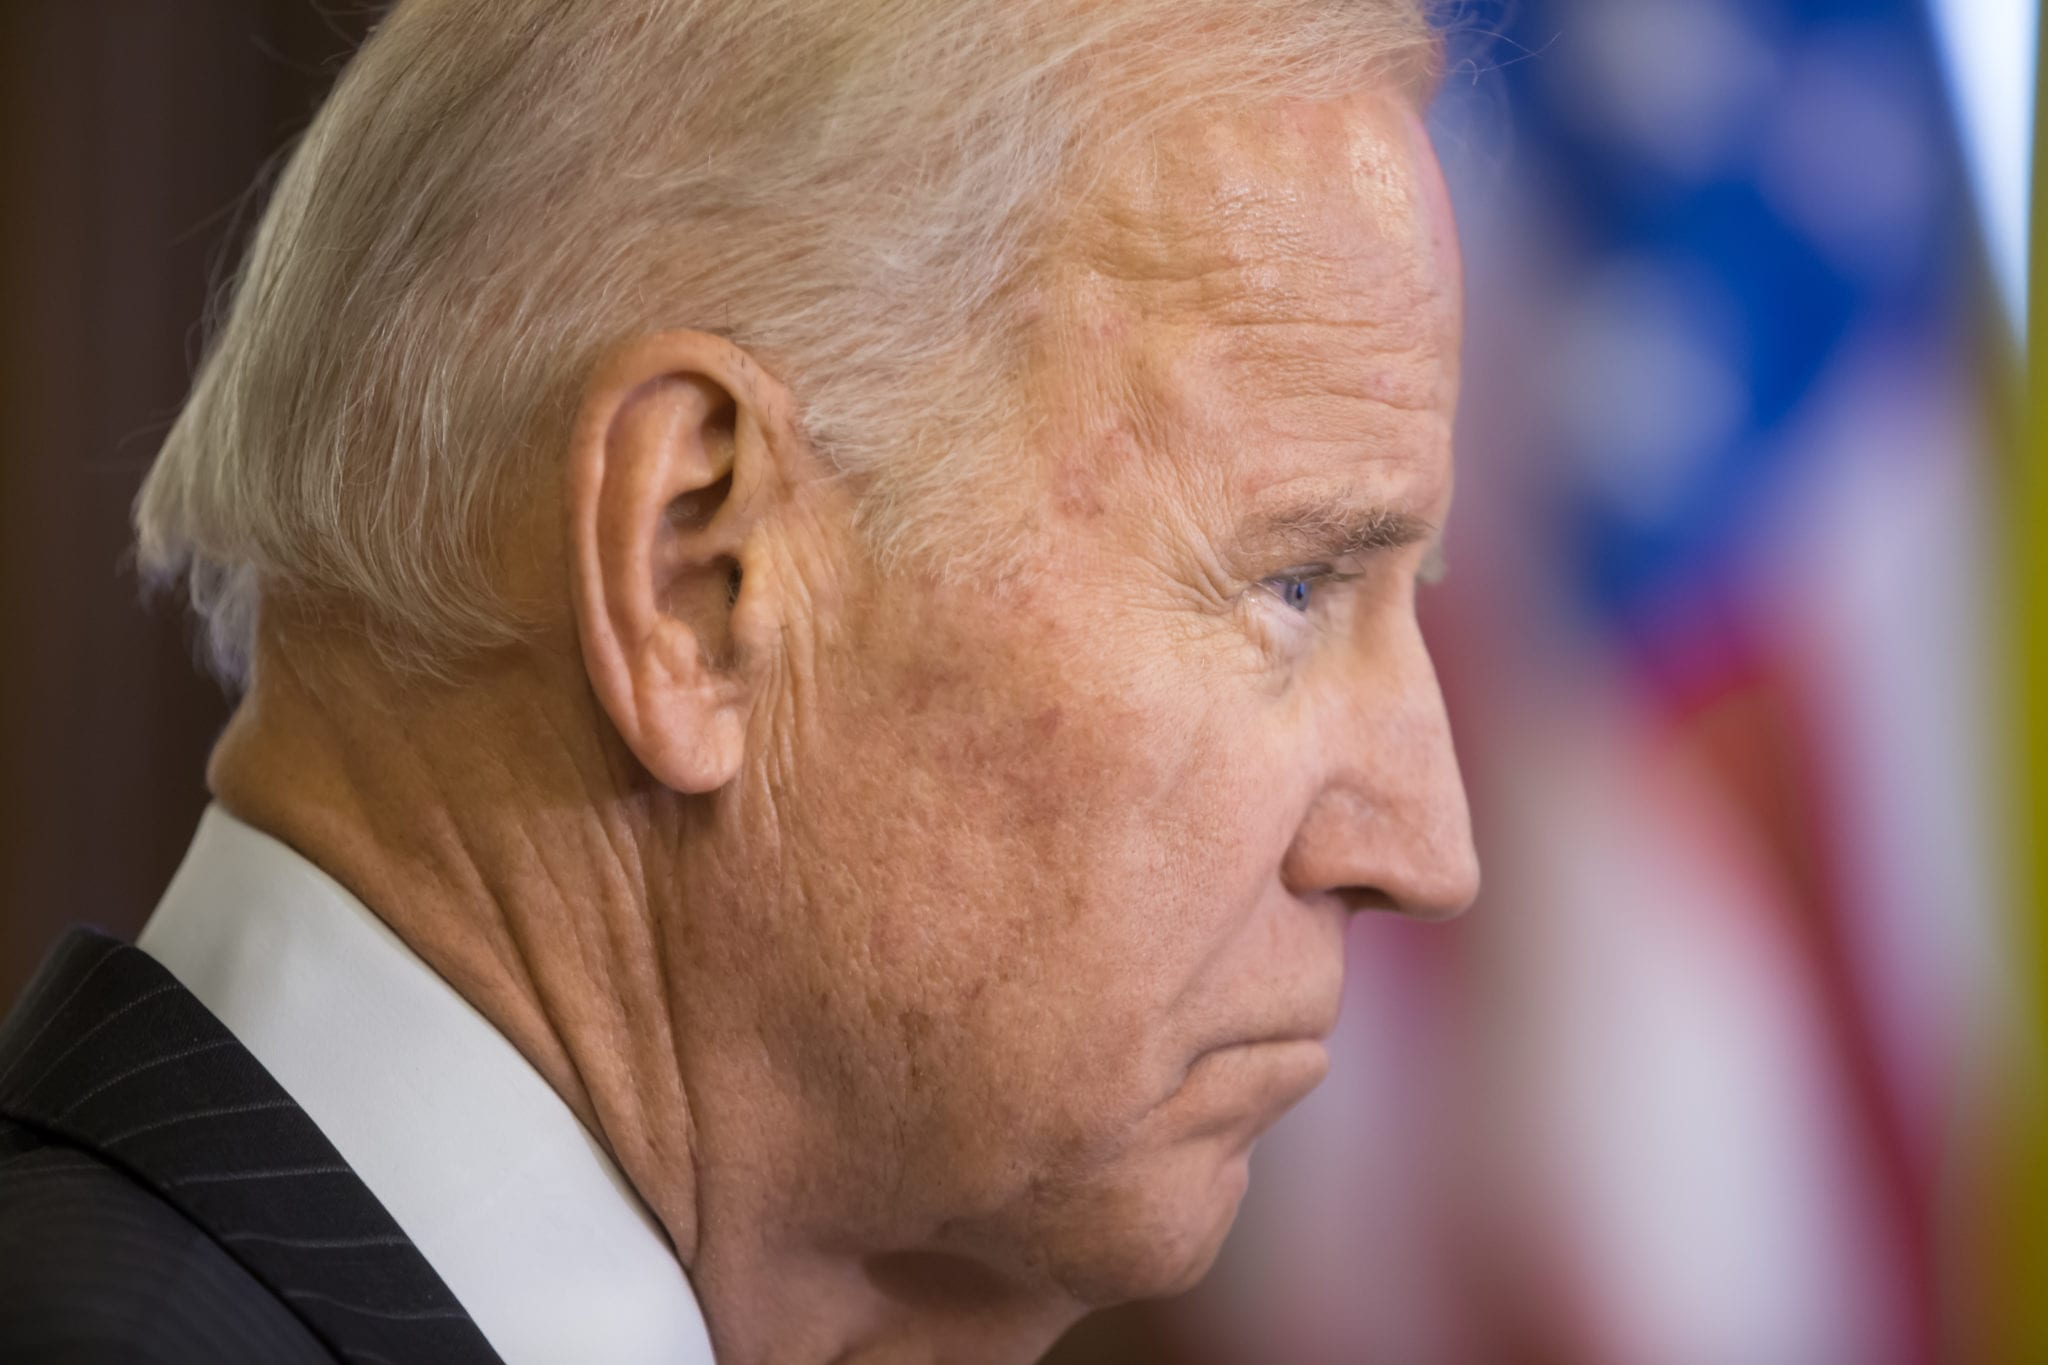 While Joe Biden, the current Democrat frontrunner to take on U.S President Donald Trump in 2020, recently made waves in the cannabis world by stating support for decriminalizing the drug, critics argue his marijuana policies don't go far enough--and Biden as president would likely mean a longer wait for federal legalization.